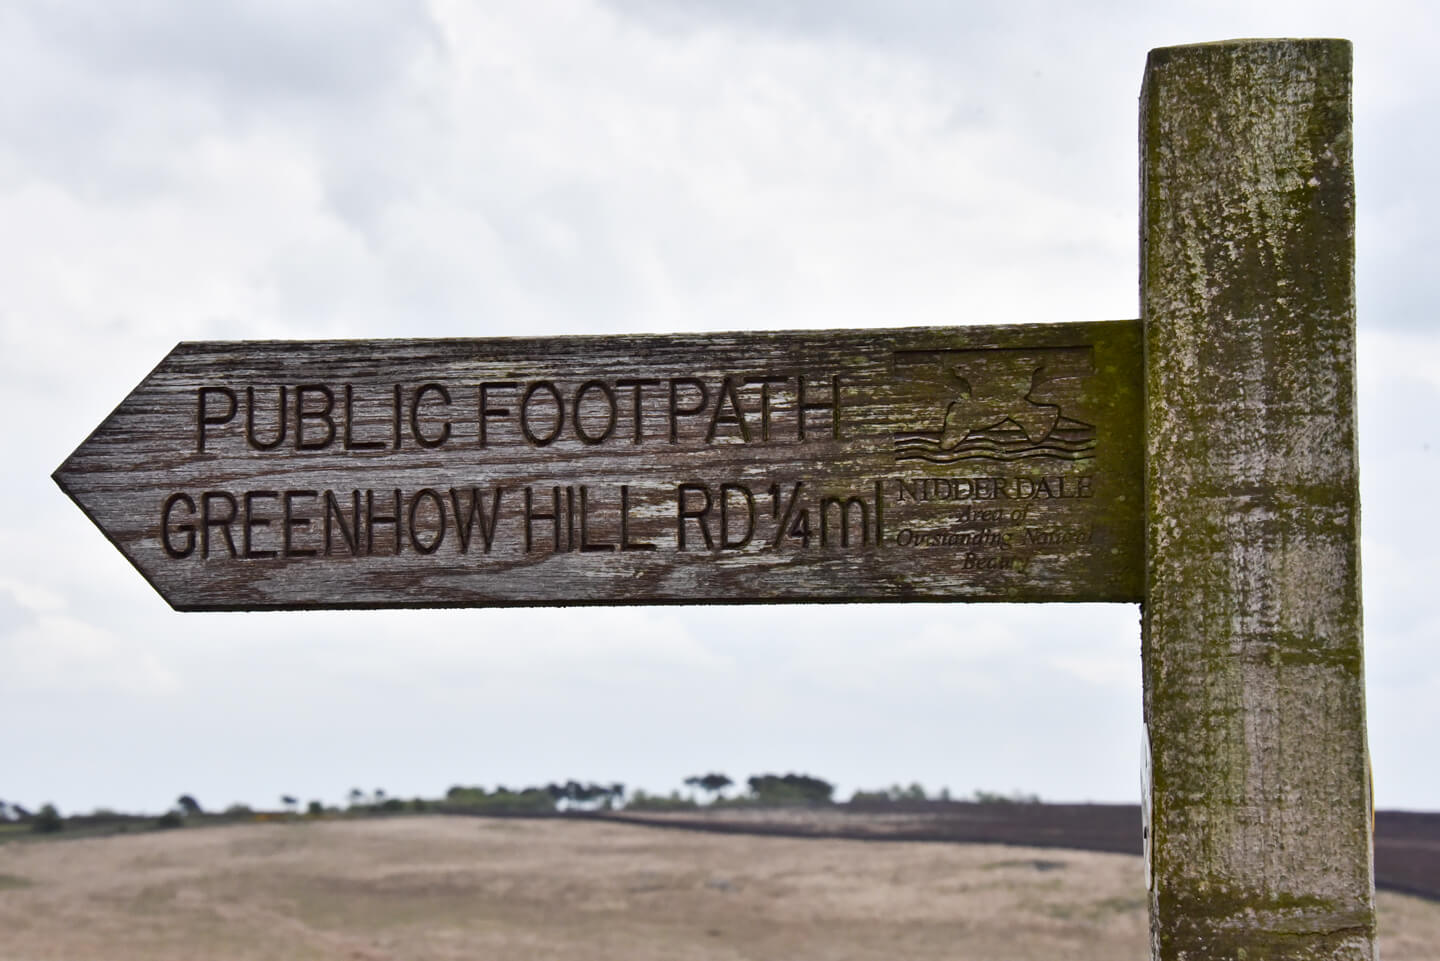 A wooden moorland signpost which points to the left and reads 'Public Footpath Greenhow Hill Road 1/4ml' It also has a carved stamp which reads Nidderdale area of outstanding beaty.